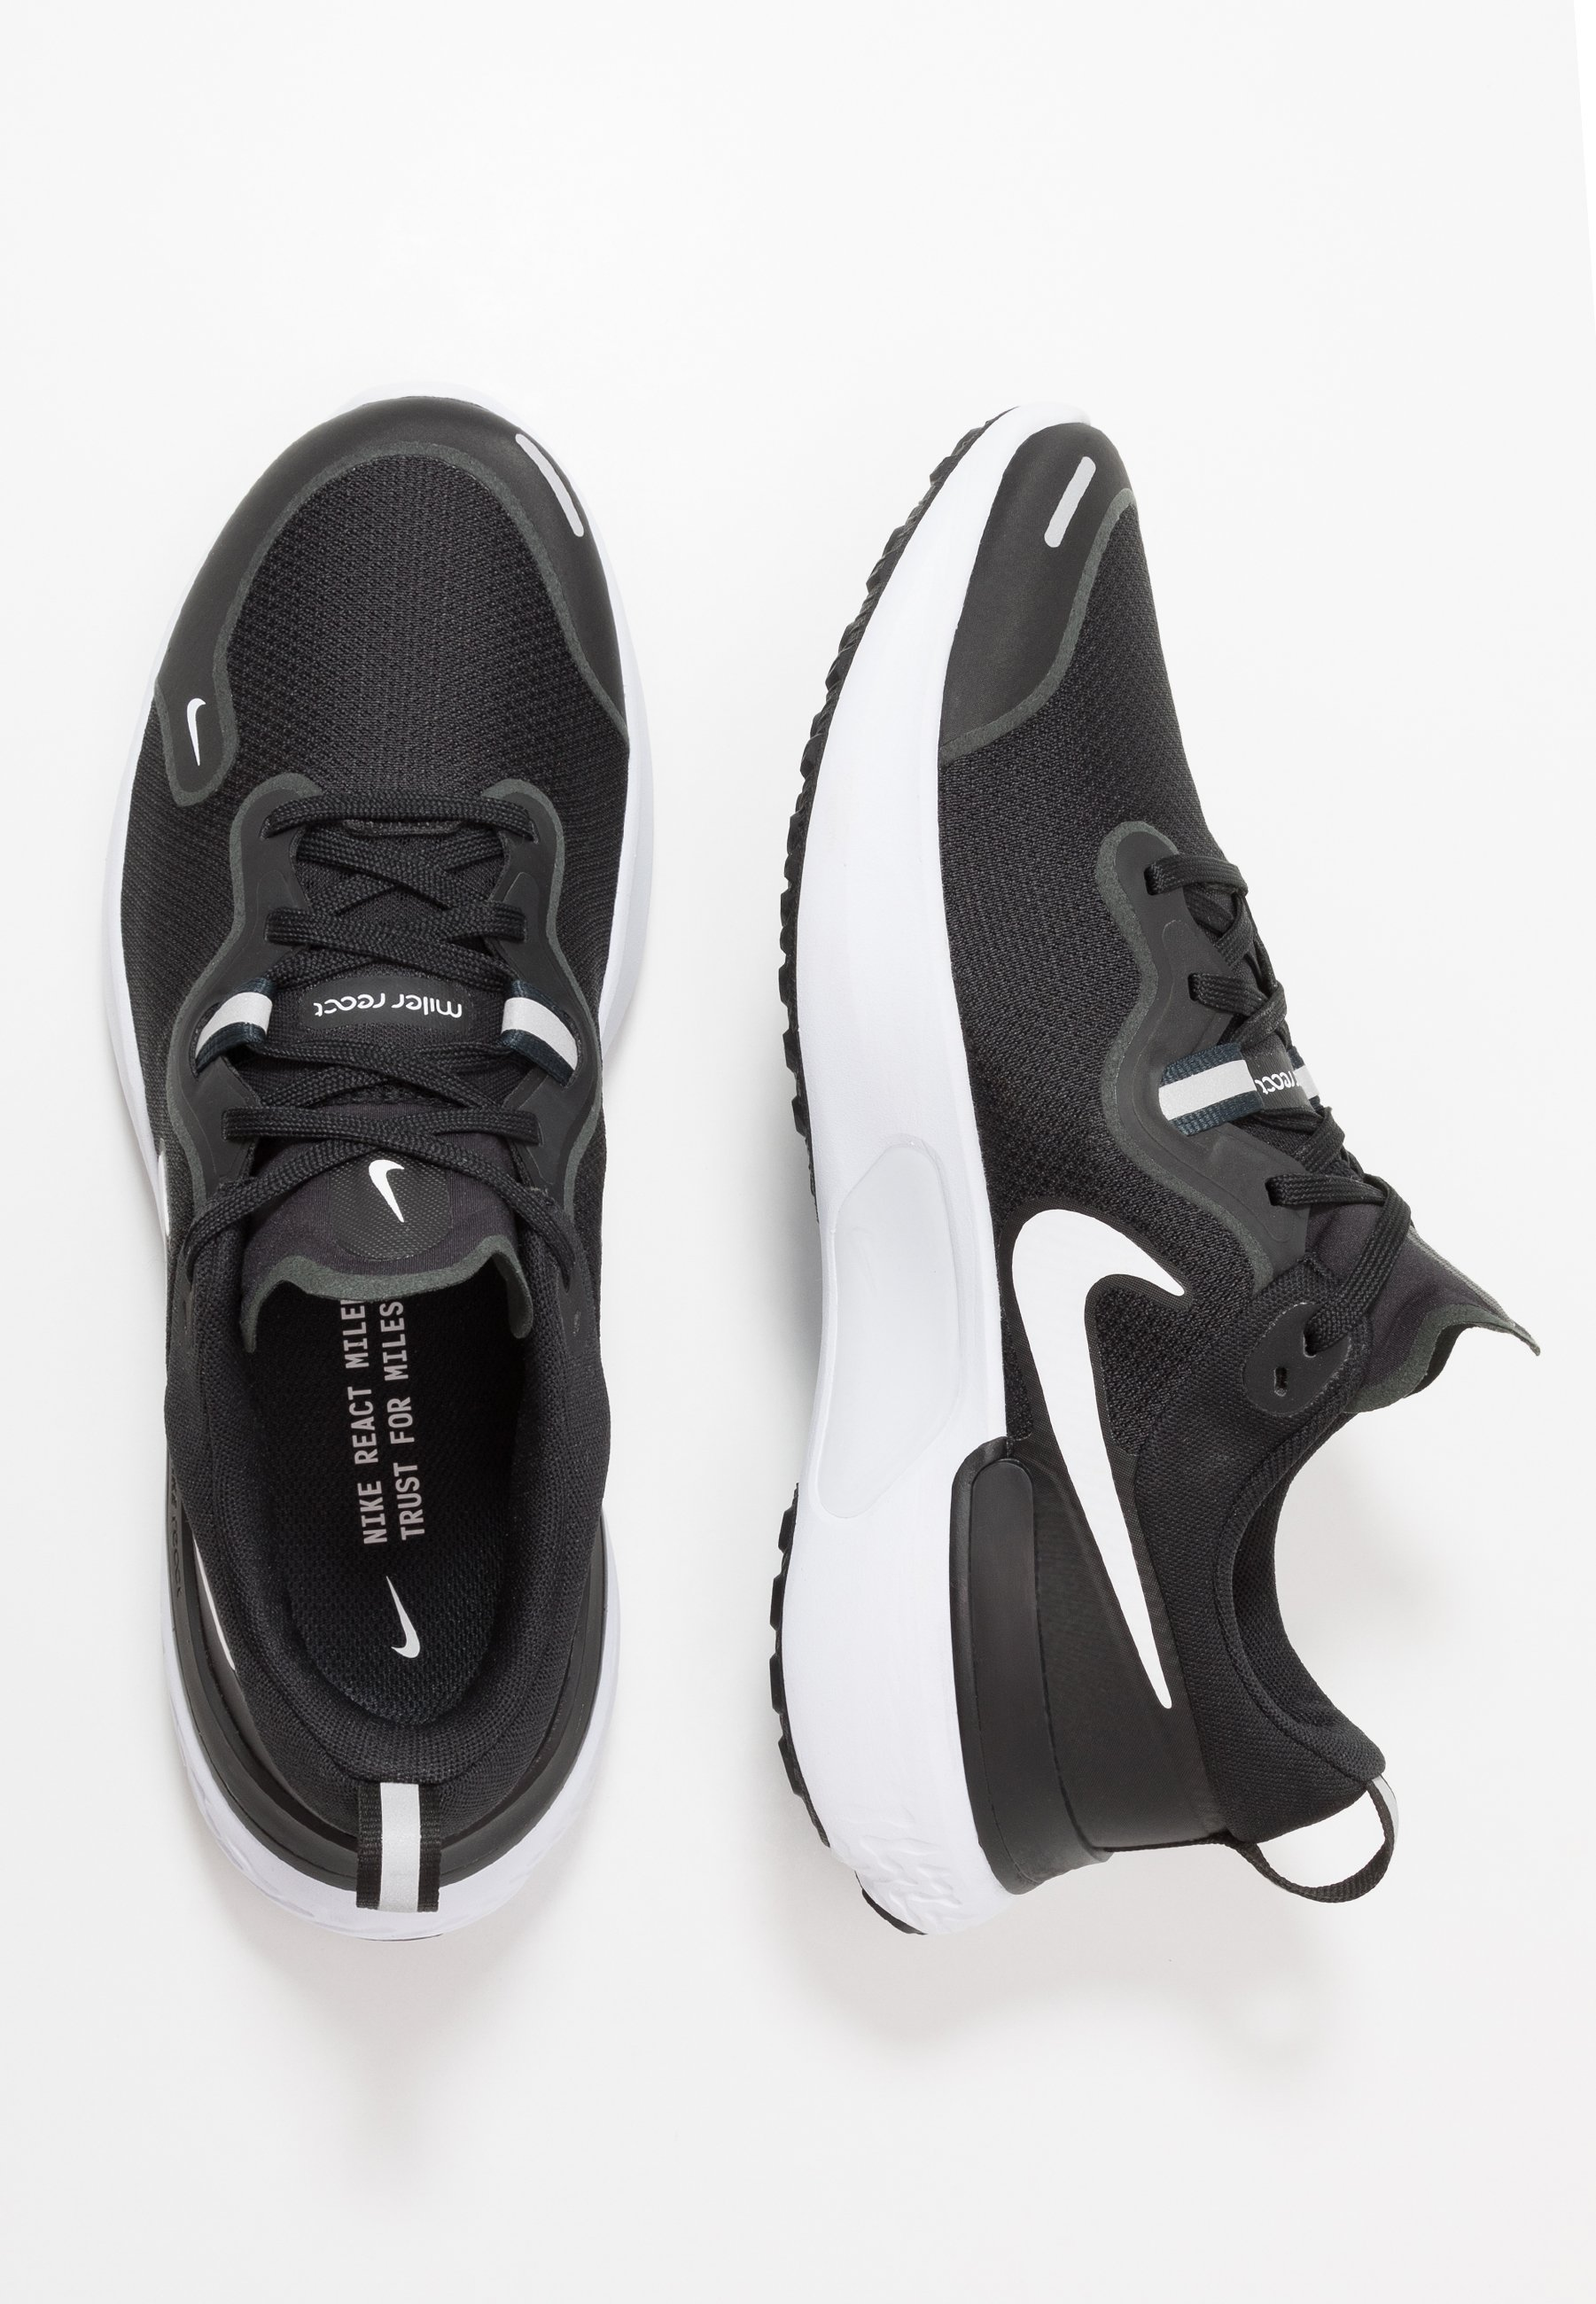 Nike Performance React Miler - Laufschuh Neutral Black/white/dark Grey/anthracite Black Friday